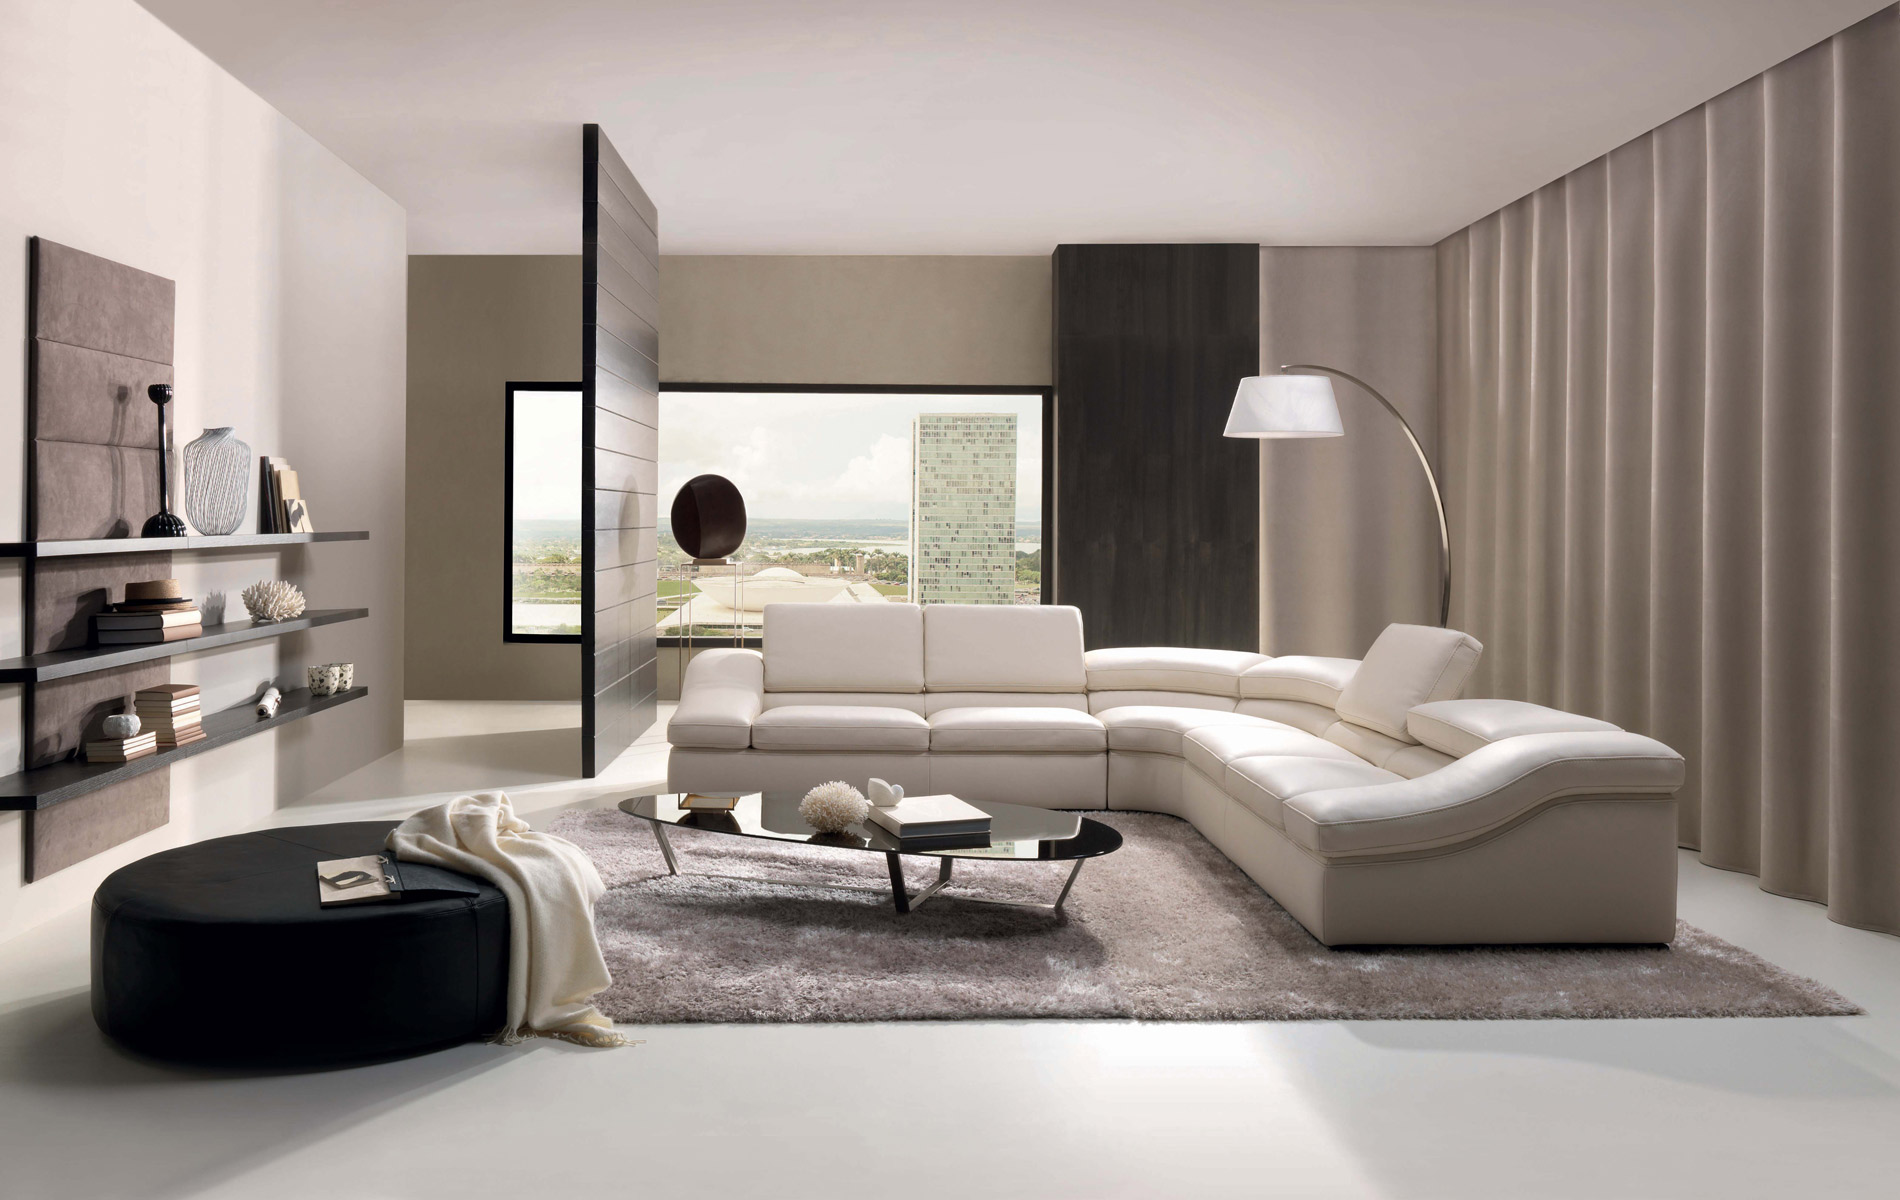 Studio Apartment Furniture Layout Ideas